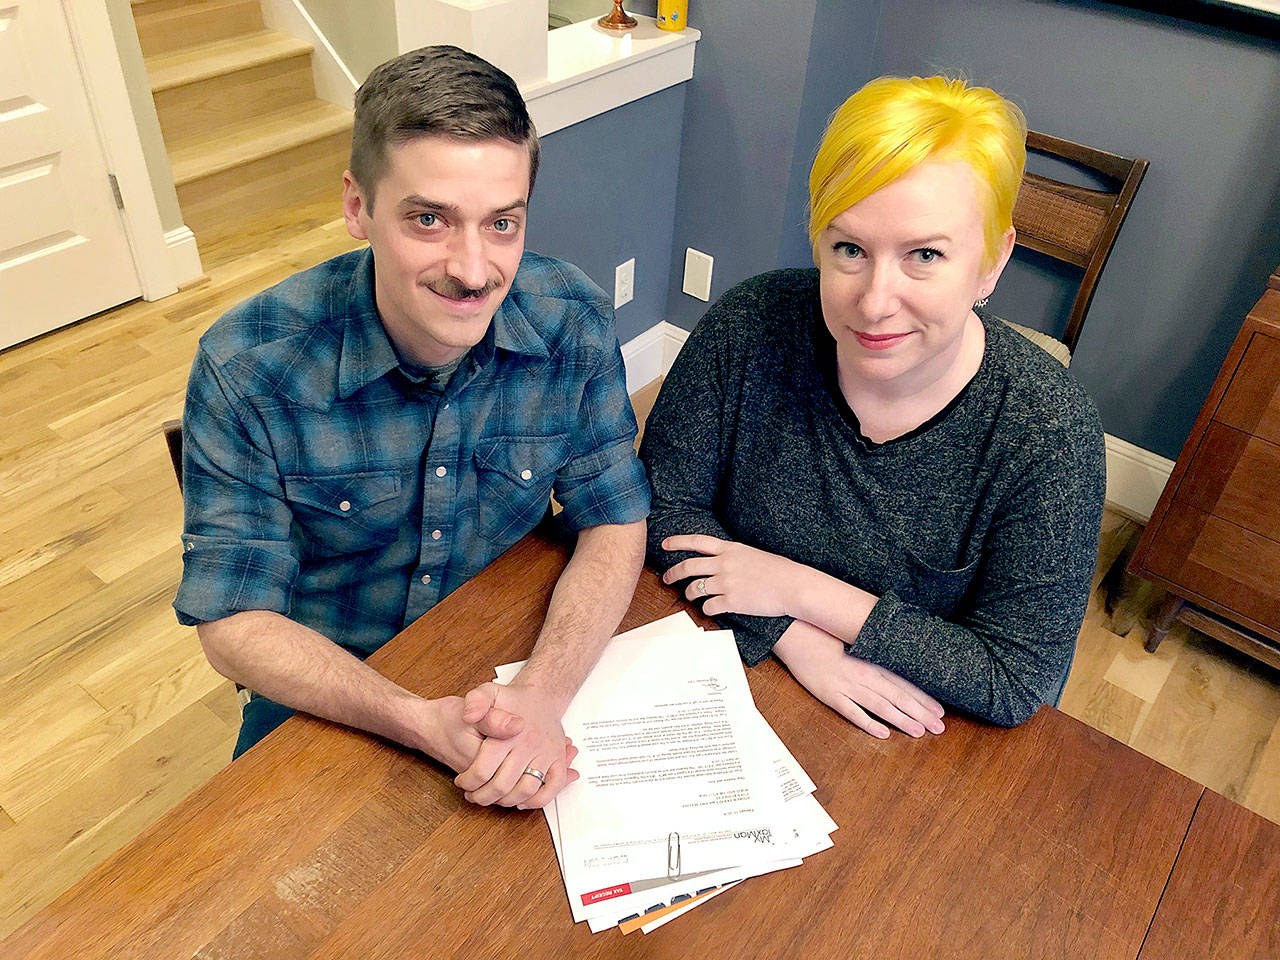 Husband and wife Andy Kraft and Amy Elias, of Portland, Oregon, with their 2018 tax paperwork. (AP Photo/Gillian Flaccus)